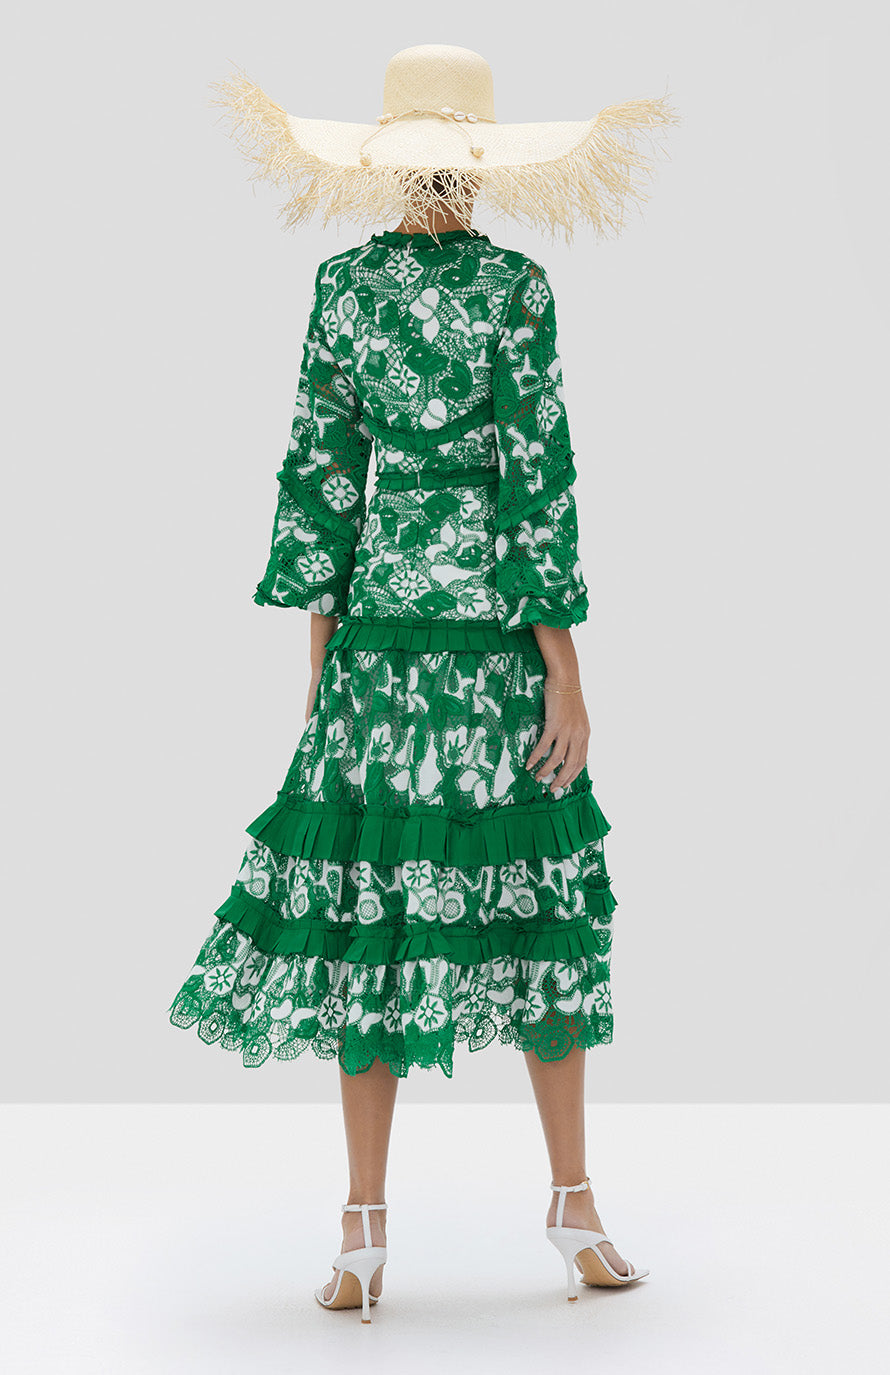 Alexis Jatta Dress in Emerald Embroidered Lace from Spring Summer 2020 Collection - Rear View